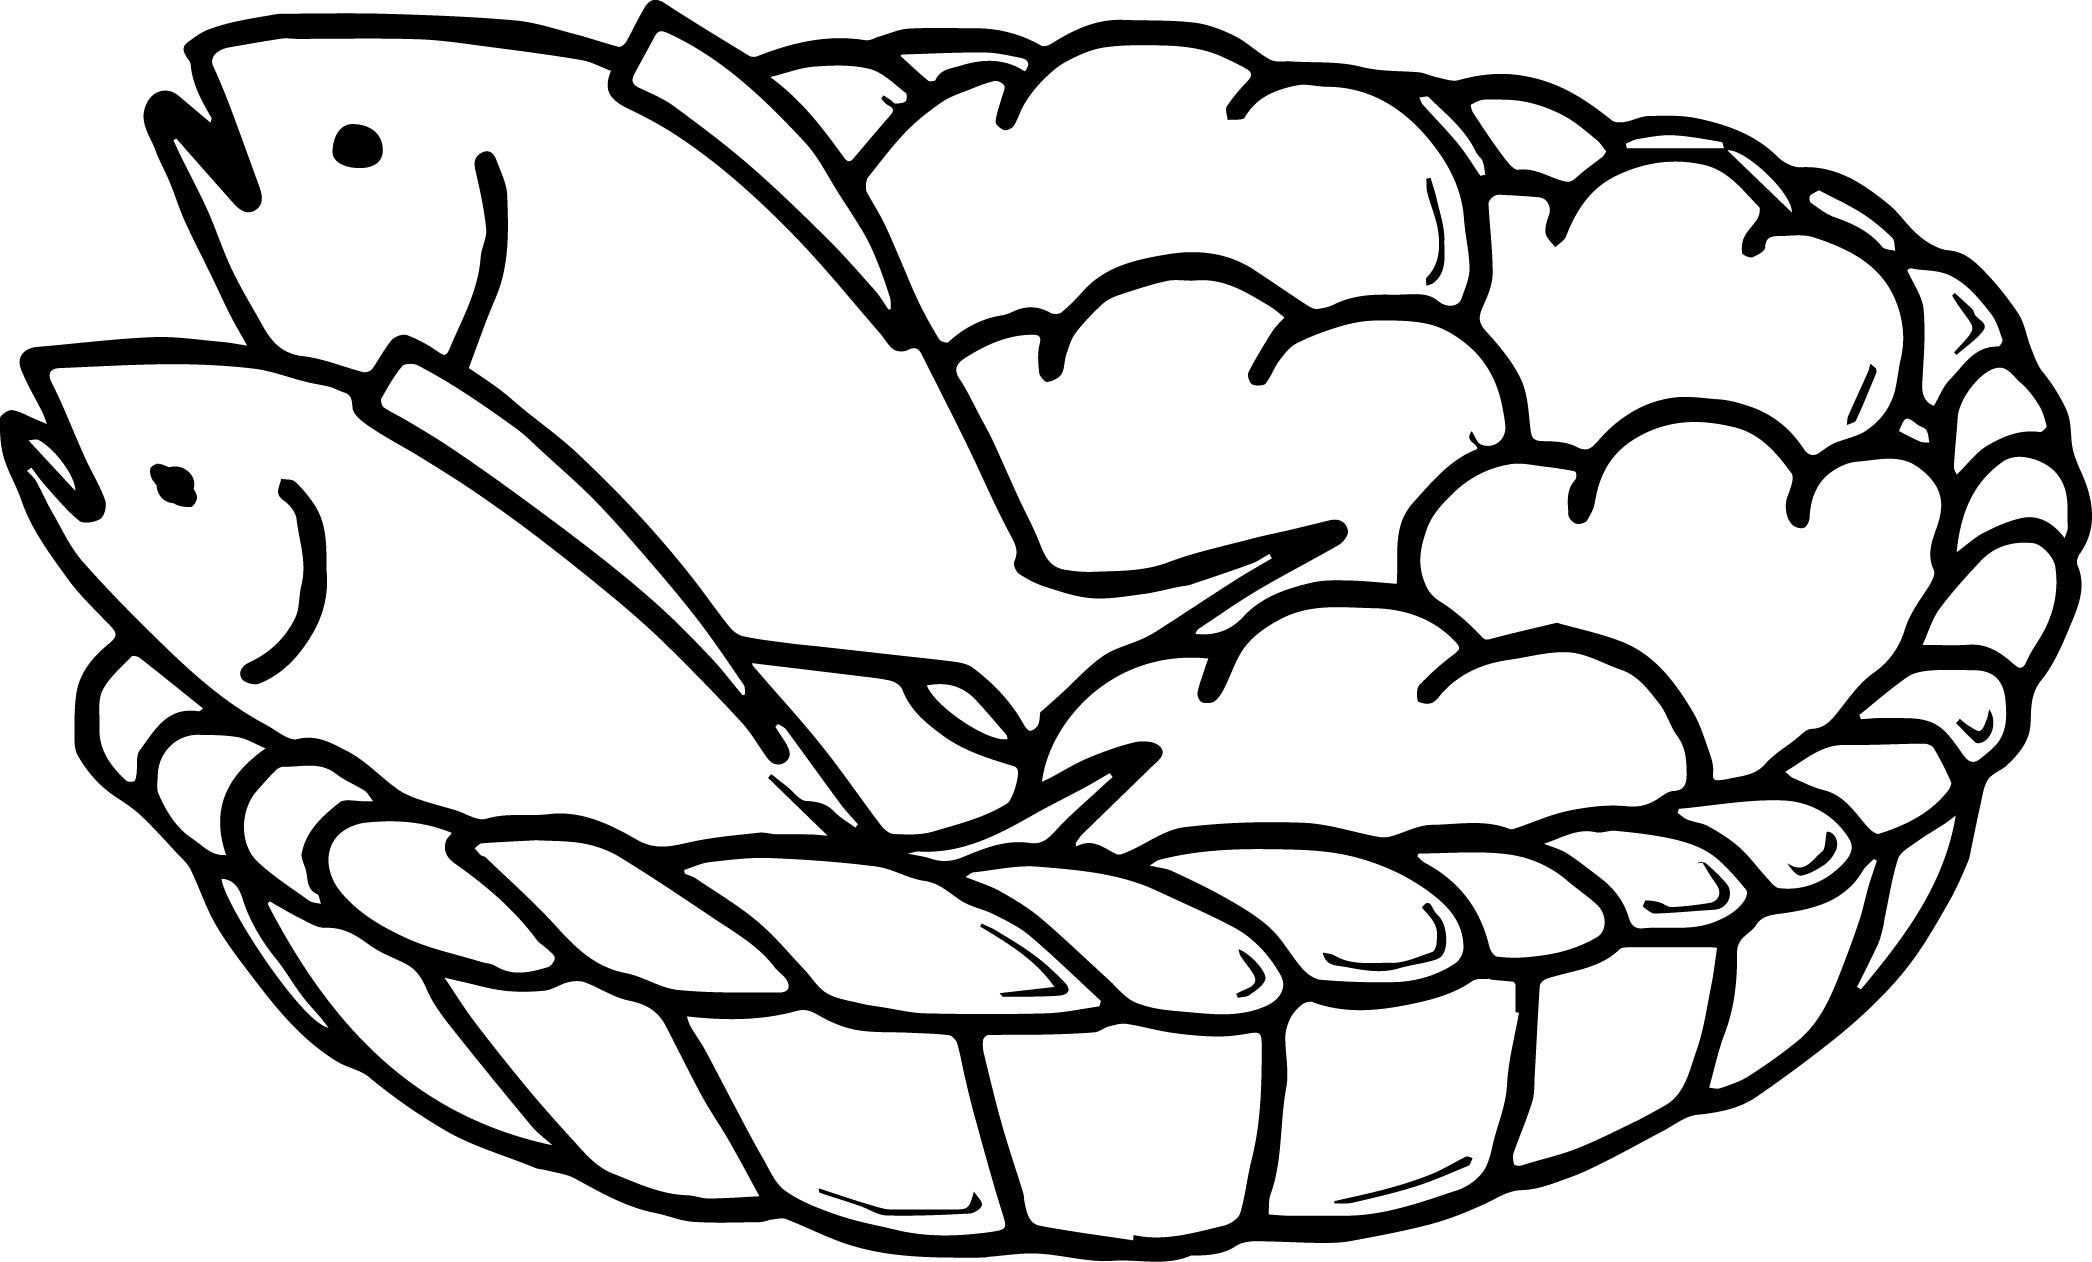 Google images free clipart loaves and fishes transparent download awesome 5 Loaves Bread And 2 Fish Coloring Page | loaves and fishes ... transparent download